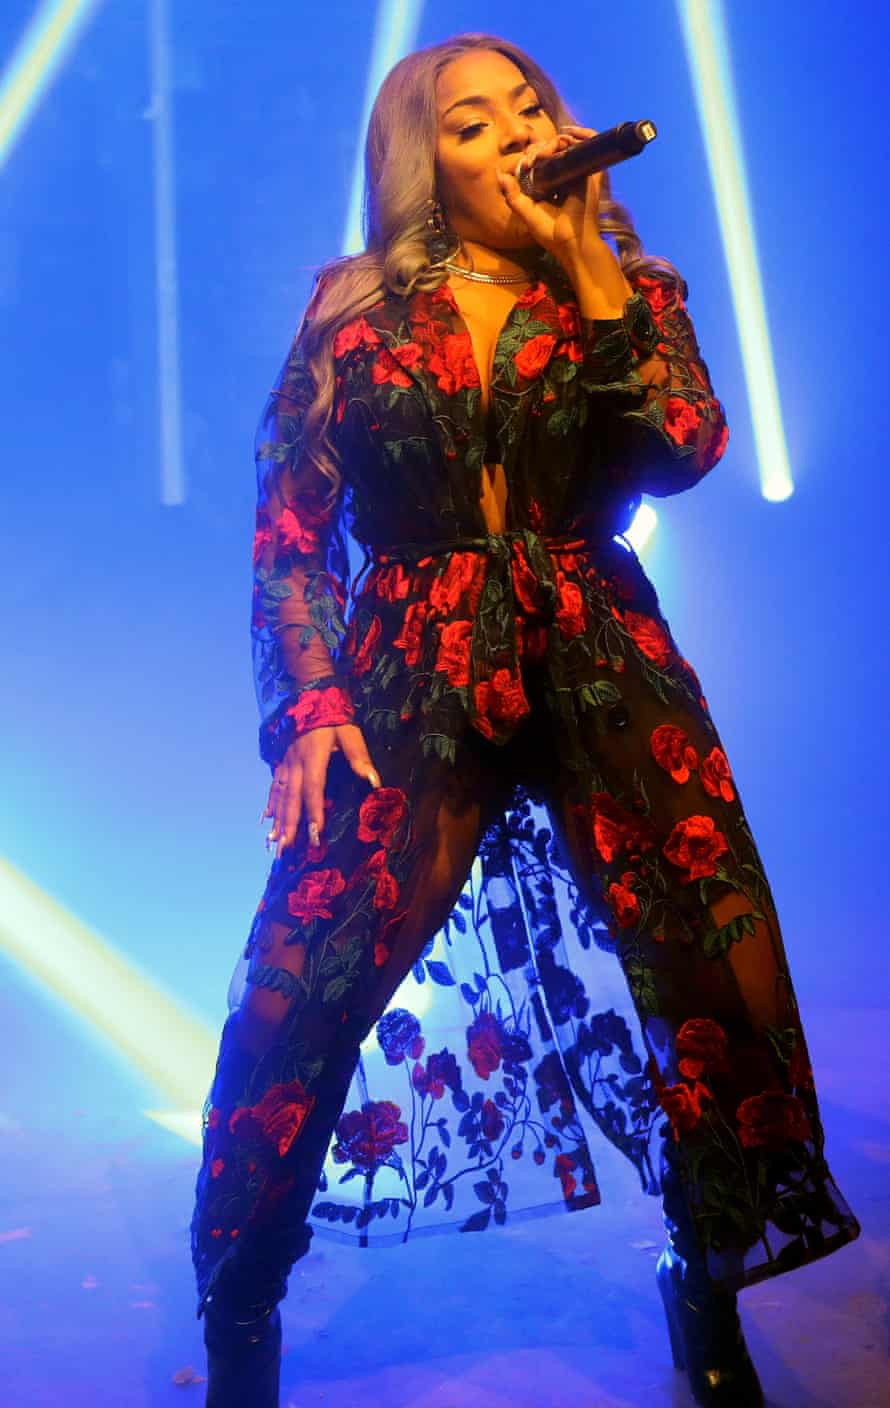 Browns East Launch PartyLONDON, ENGLAND - NOVEMBER 01: Stefflon Don (C) performs at the Browns east launch party at 1a Chance Street on November 1, 2017 in London, England. (Photo by Darren Gerrish/WireImage)